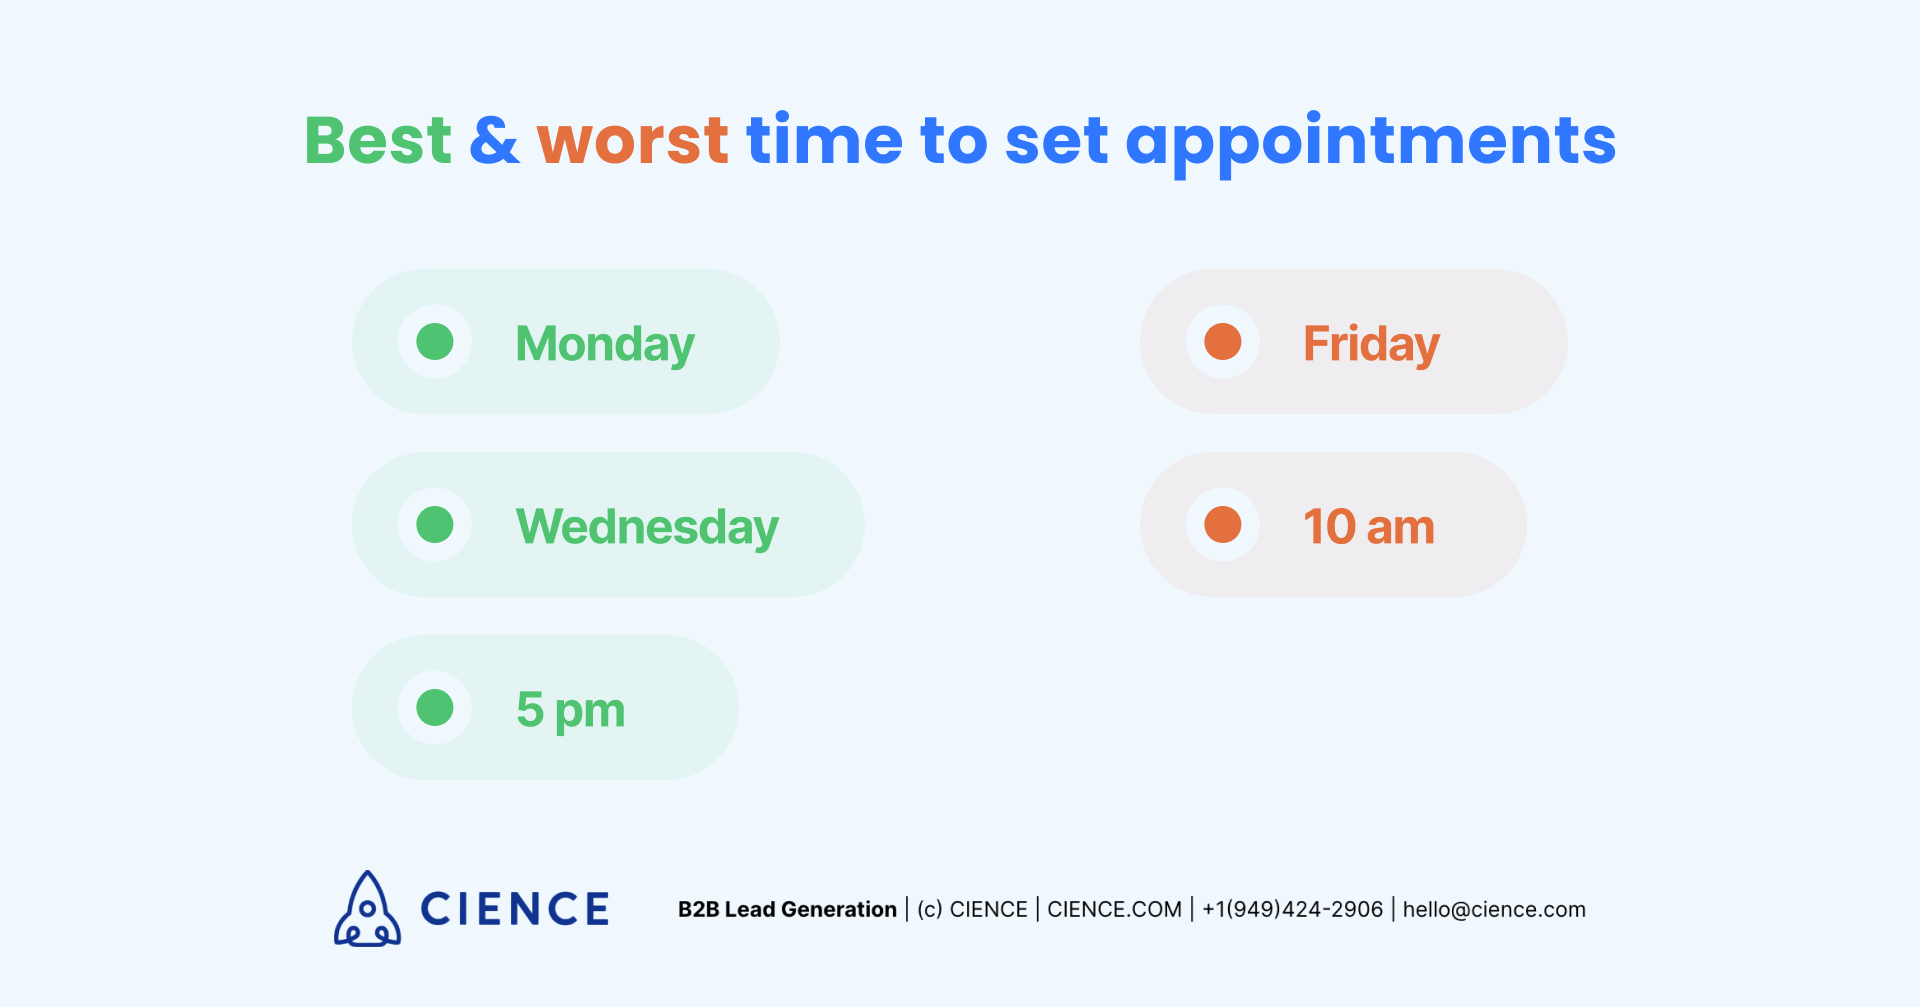 Best and worst time to set appointments